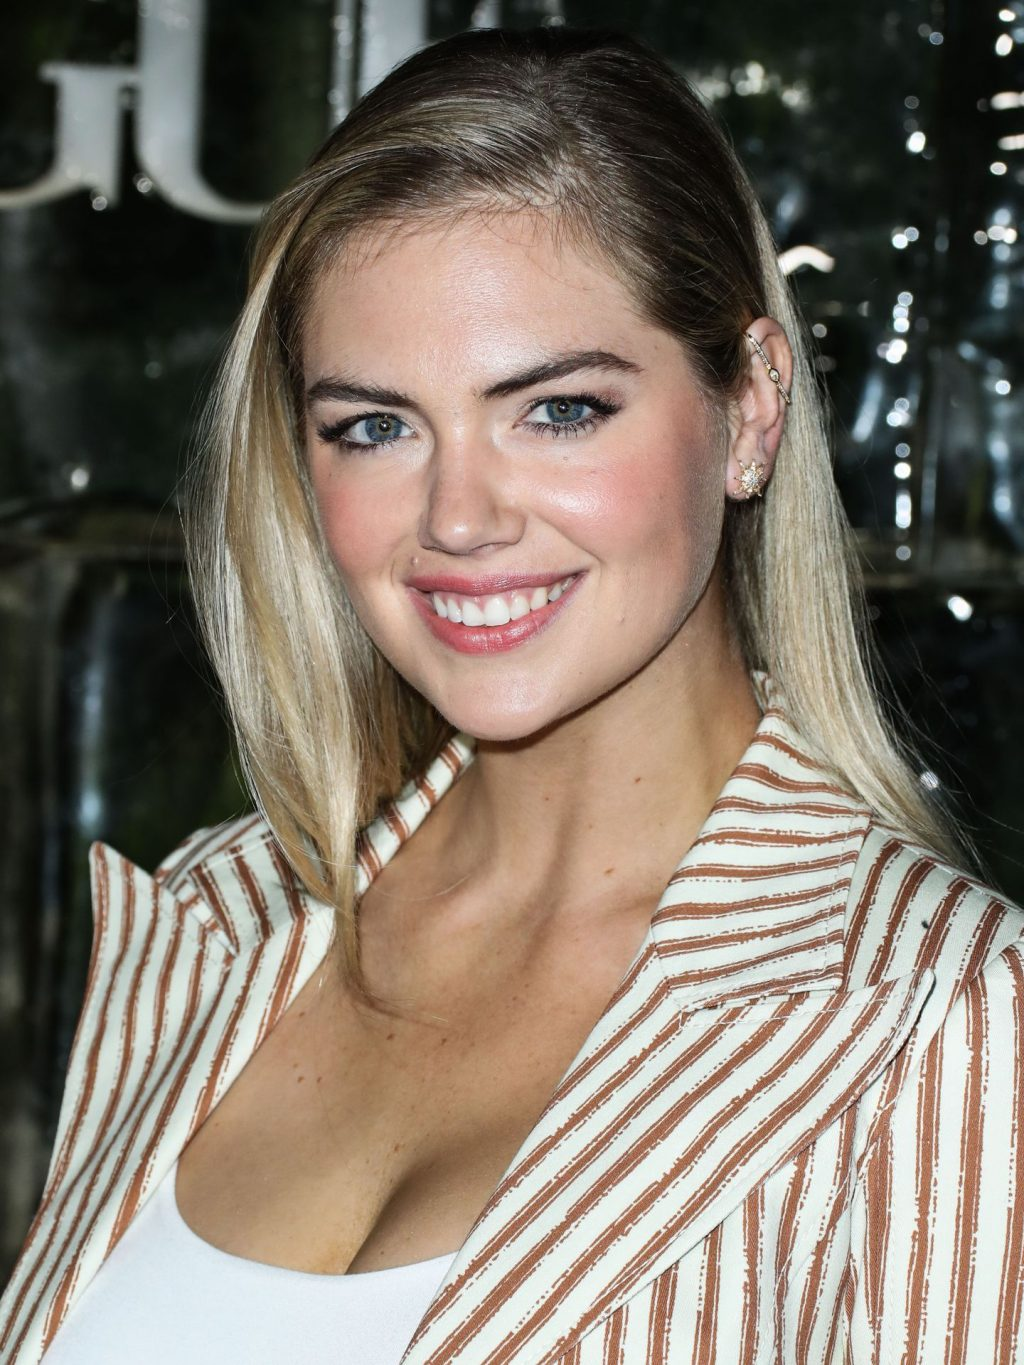 Kate Upton Attends Canada Goose And Vogue Cocktails & Conversations (104 Photos)